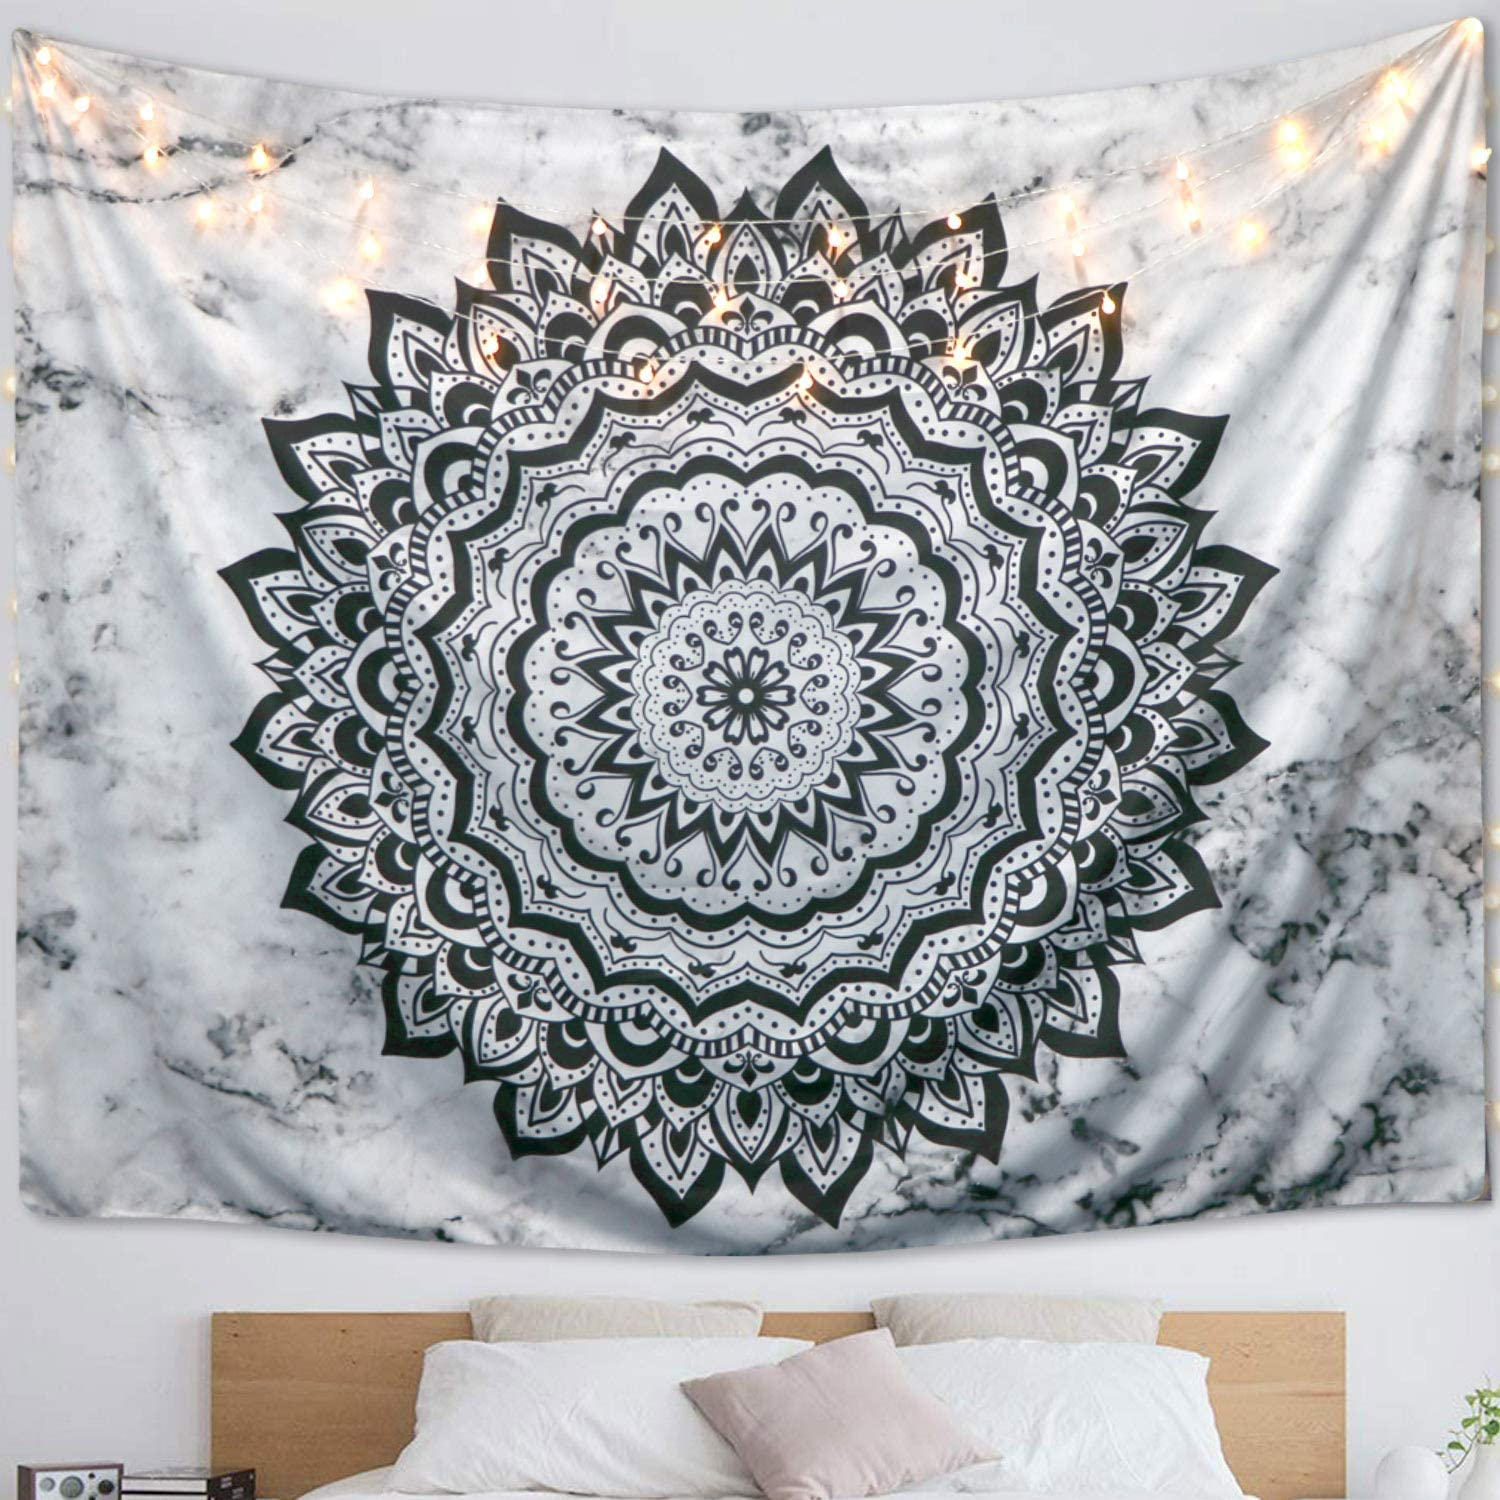 """BUUSKY Tapestry Wall Hanging Mandala Black and White Marble Wall Art Indian Hippie Bedding Dorm Decor Bedspread (50""""x60"""")"""